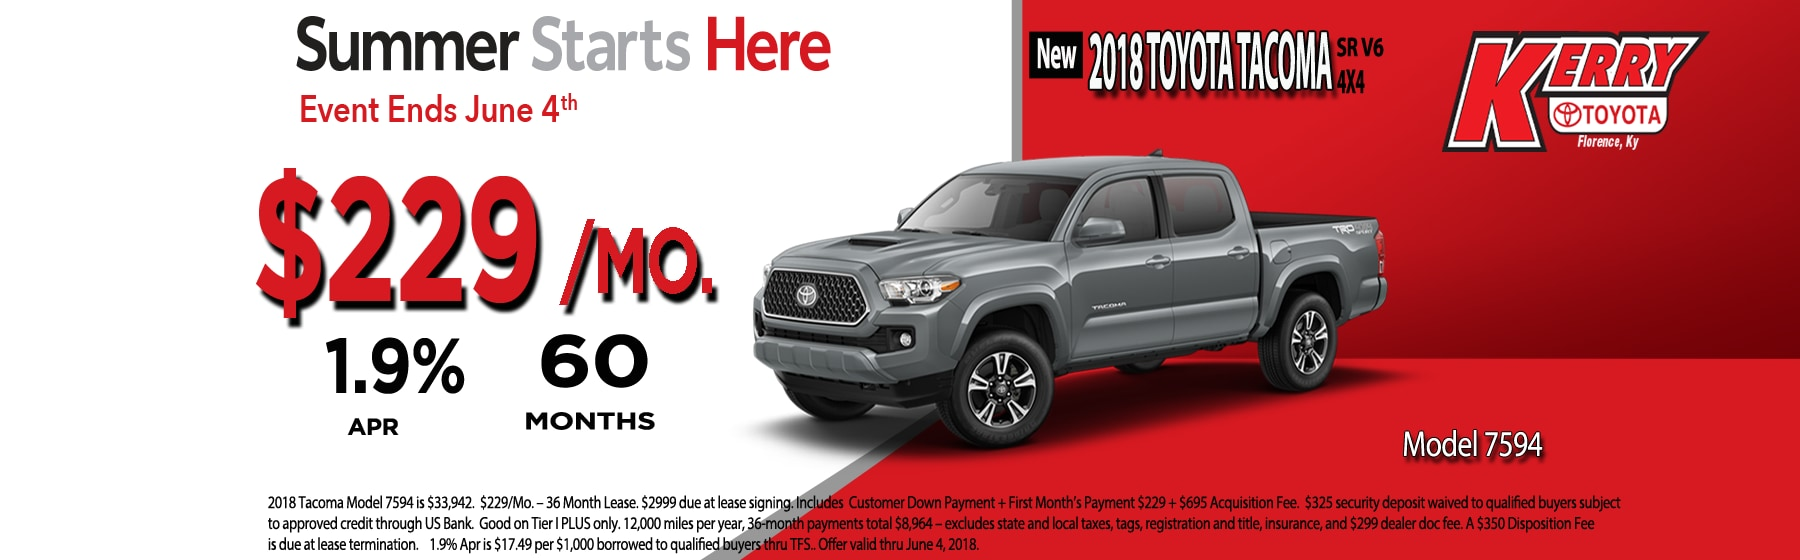 Car Dealerships Florence Ky >> New & Used Kerry Toyota Dealership | Florence, KY Near ...